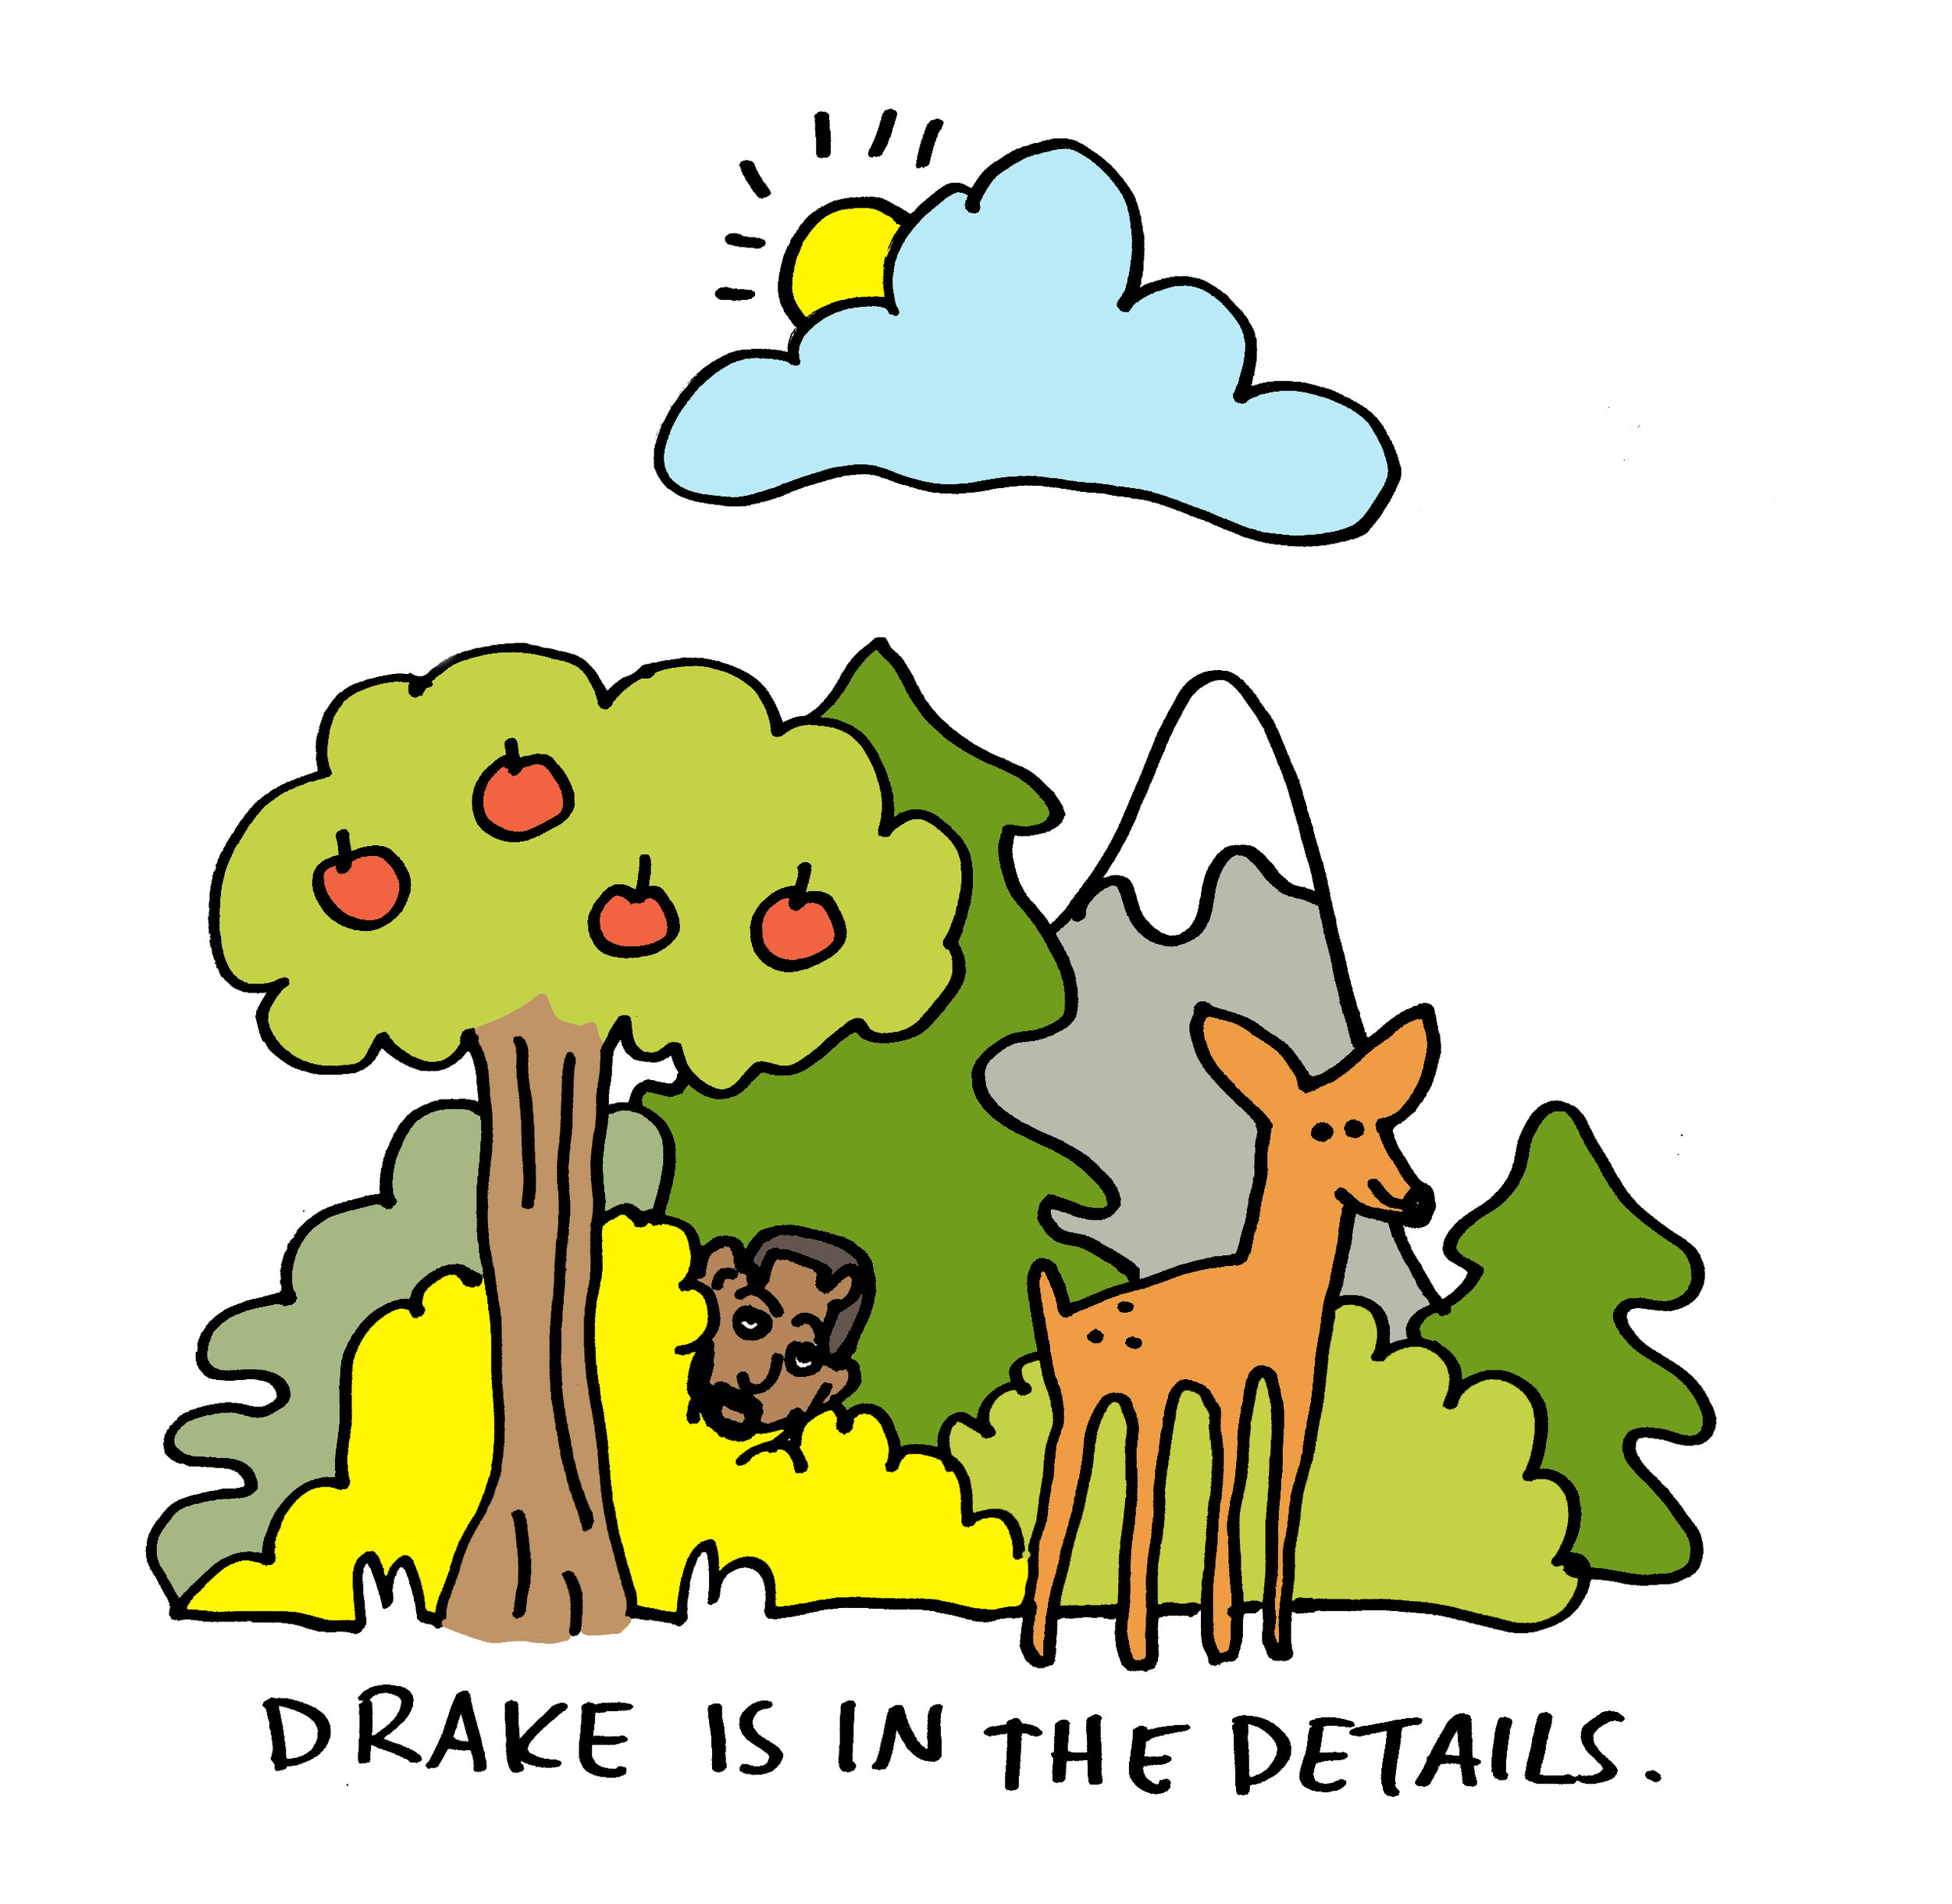 Drake is in the details